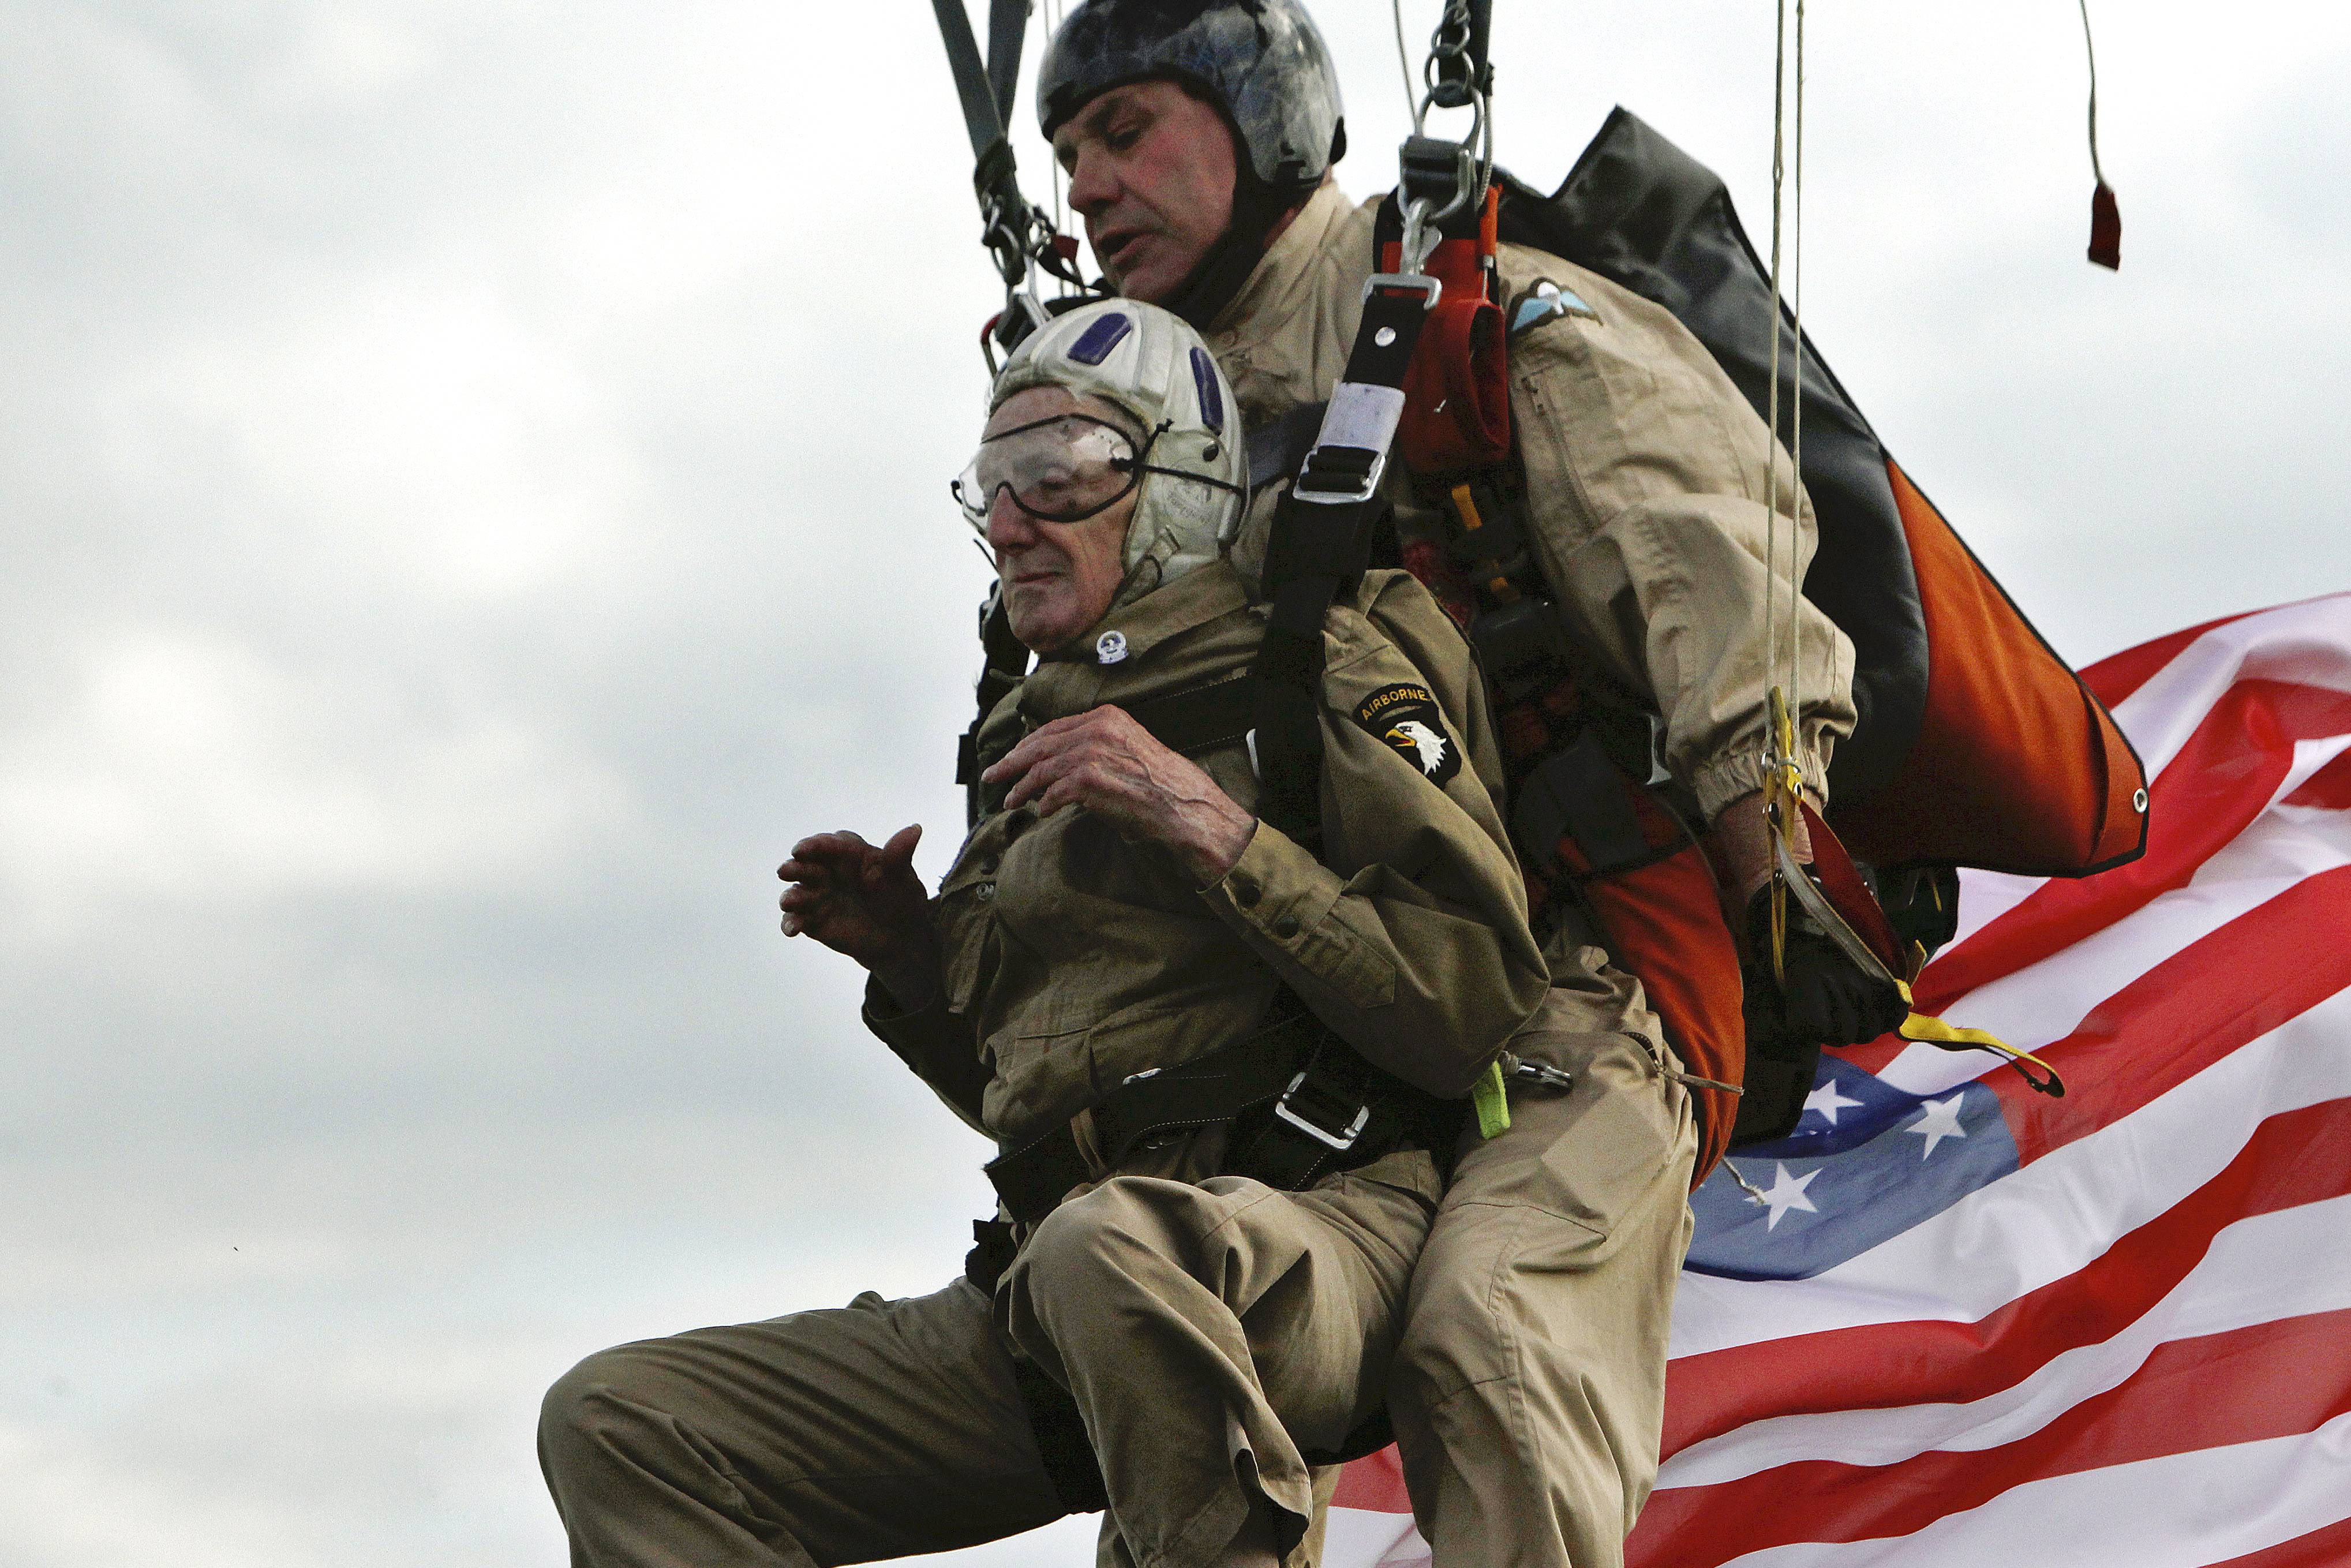 93-year-old U.S. WW II veteran Jim Martin of the 101st Airborne, left, completes a tandem parachute jump onto Utah Beach, western France, Thursday June 5, 2014, as part of the commemoration of the 70th anniversary of the D Day.